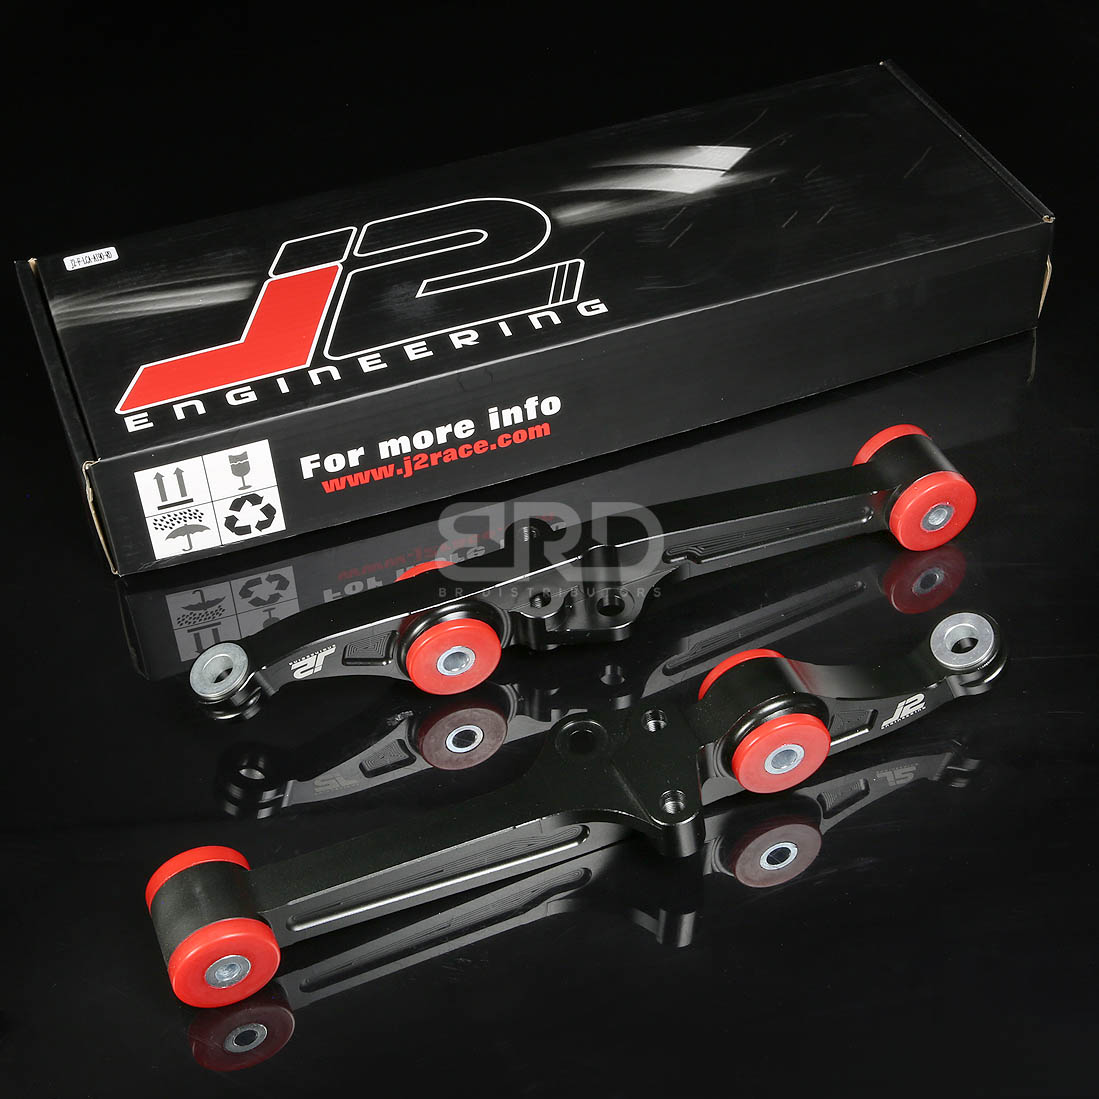 88-91 Honda Civic/CRX and 90-93 Acura Integra Front Lower Control Arms are HERE!!! - Honda-Tech ...